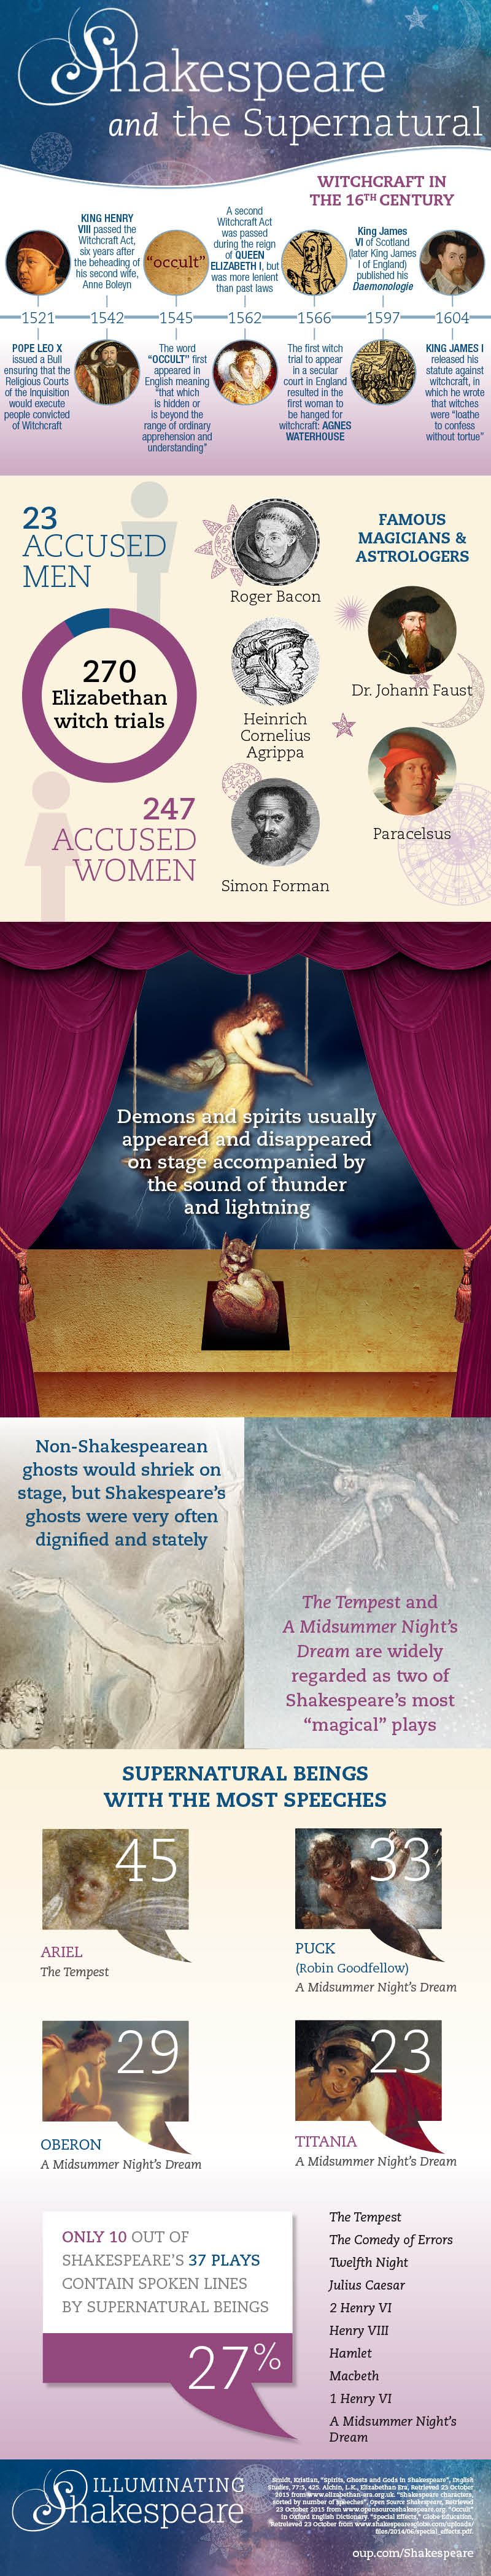 the supernatural in shakespeare infographic oupblog elr shakespearesupernaturalv2 010415 final